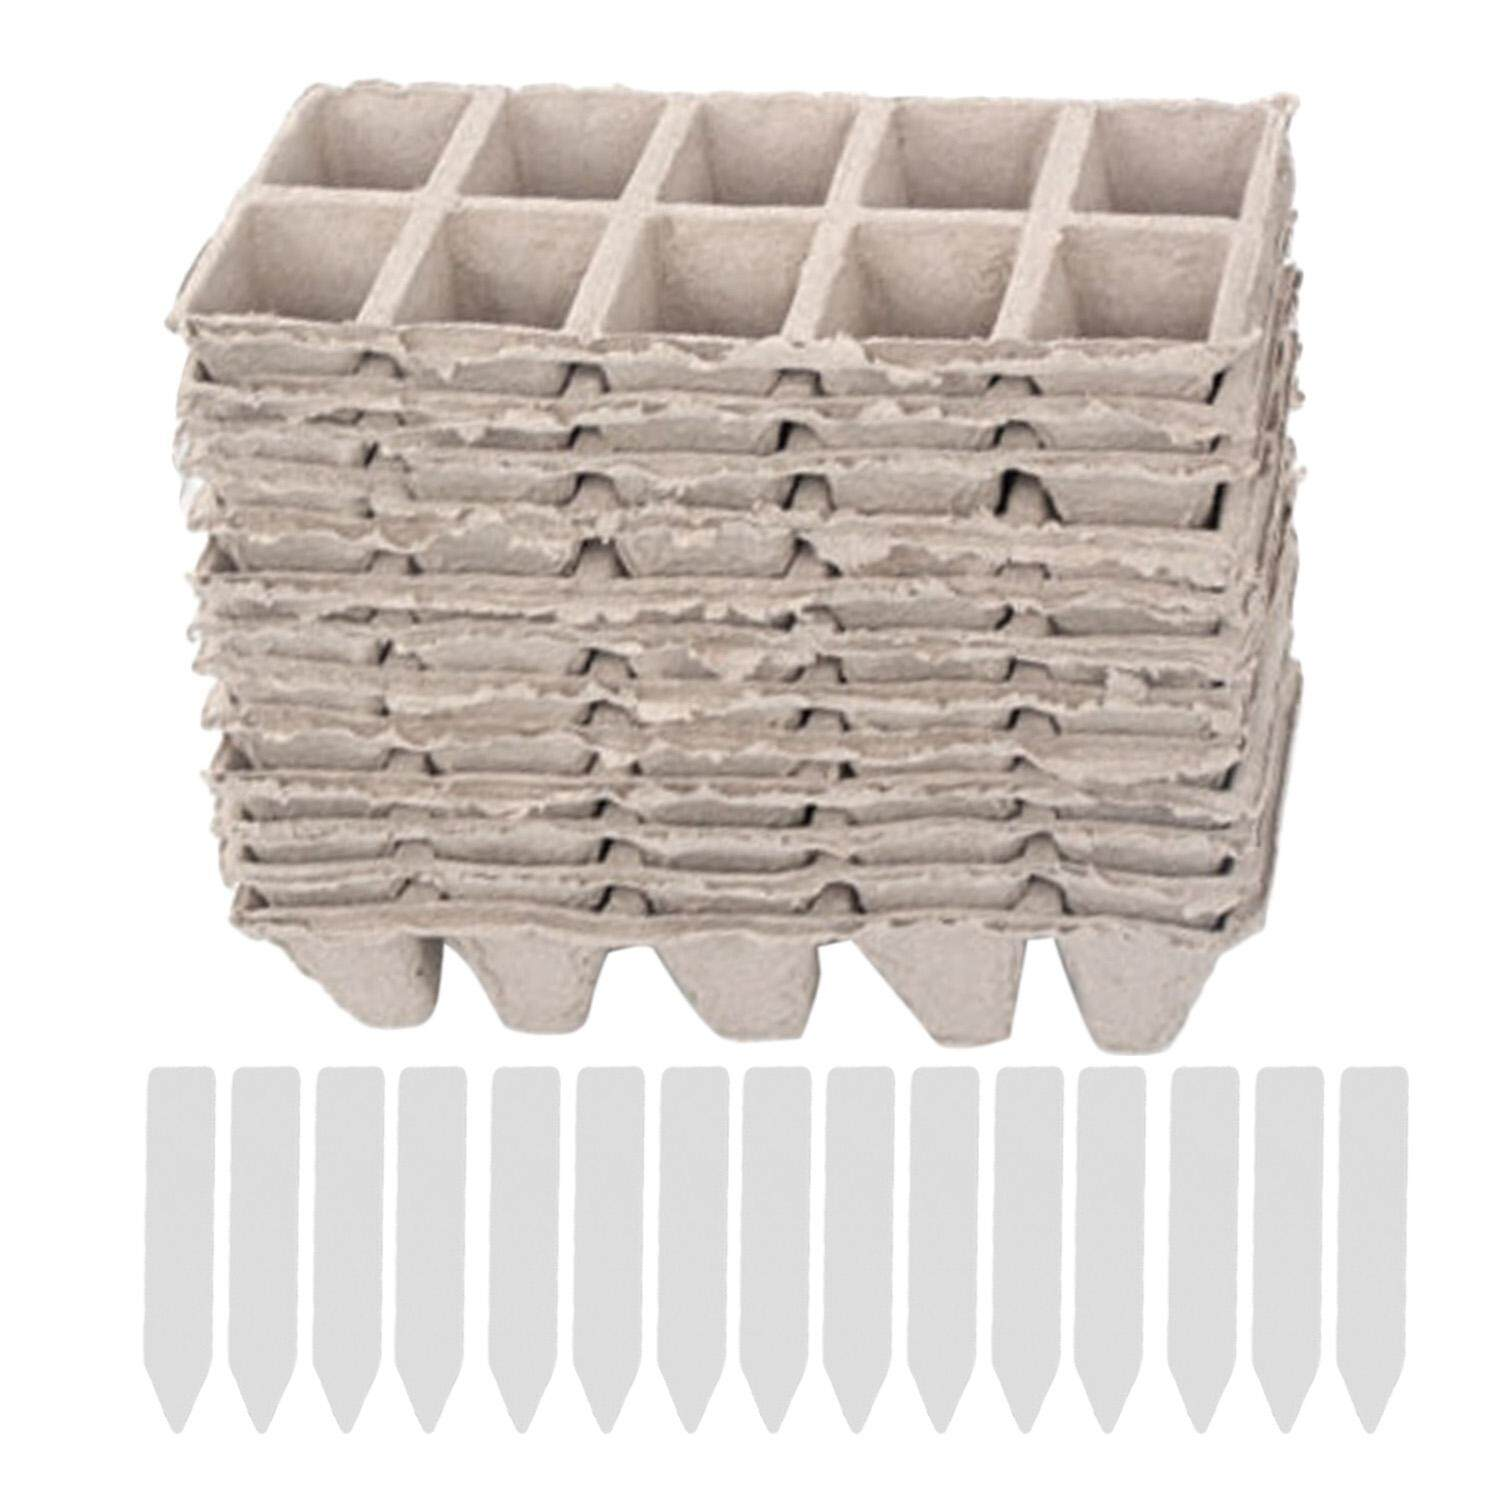 10 Strips Square Peat Pots Plant Seedling Starters Cups Nursery Herb Seed Biodegradable Pots with 50pcs Label Maker Tags - intl